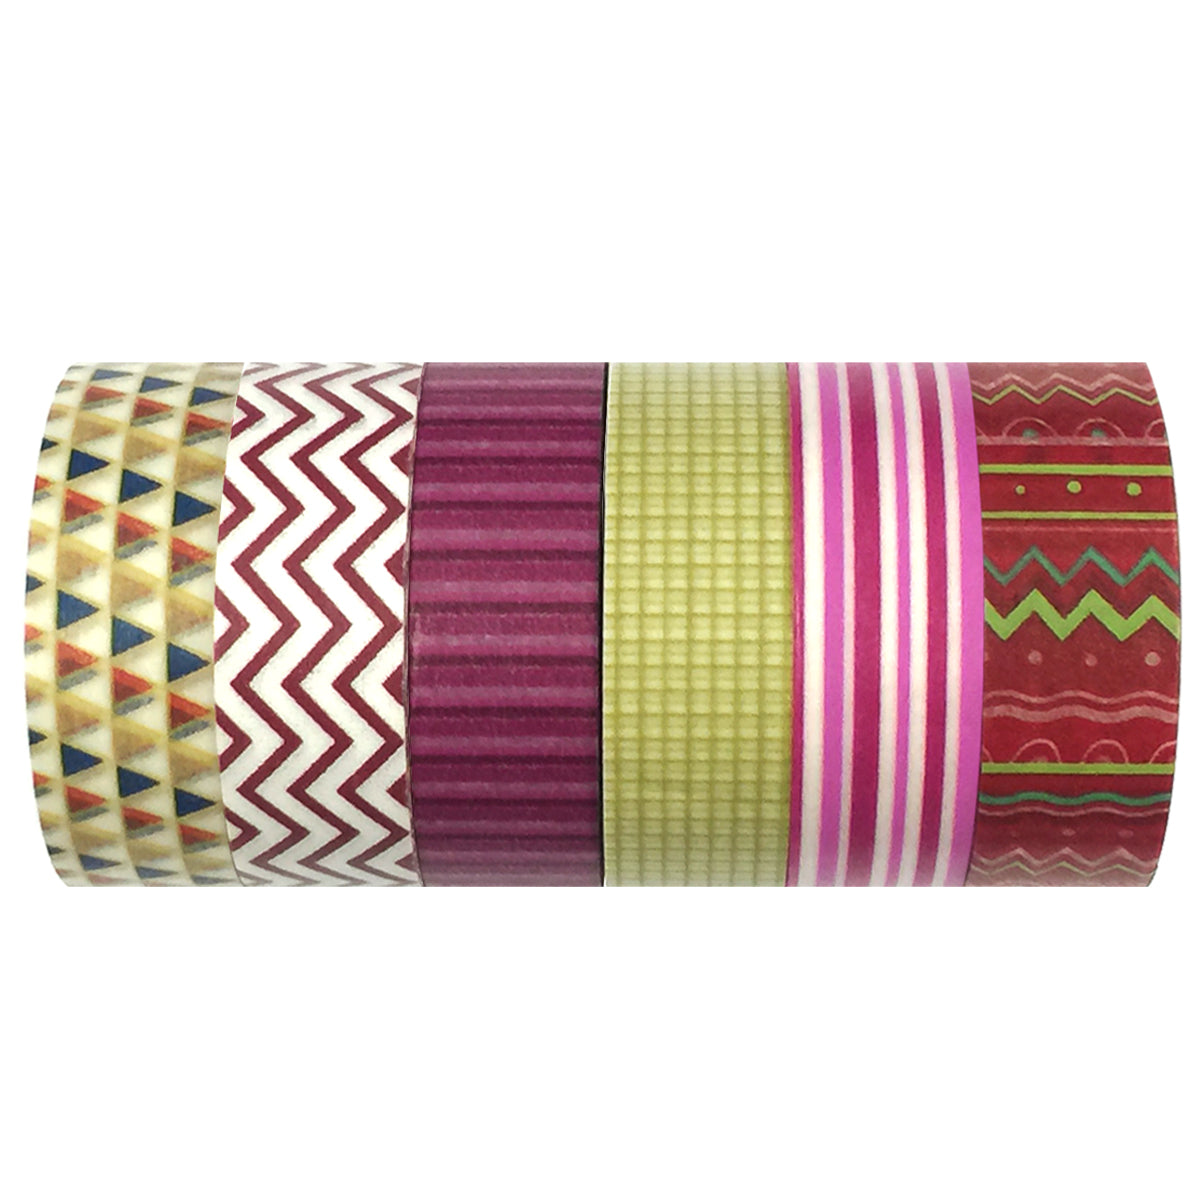 Wrapables Washi Masking Tape Collection, Premium Value Pack